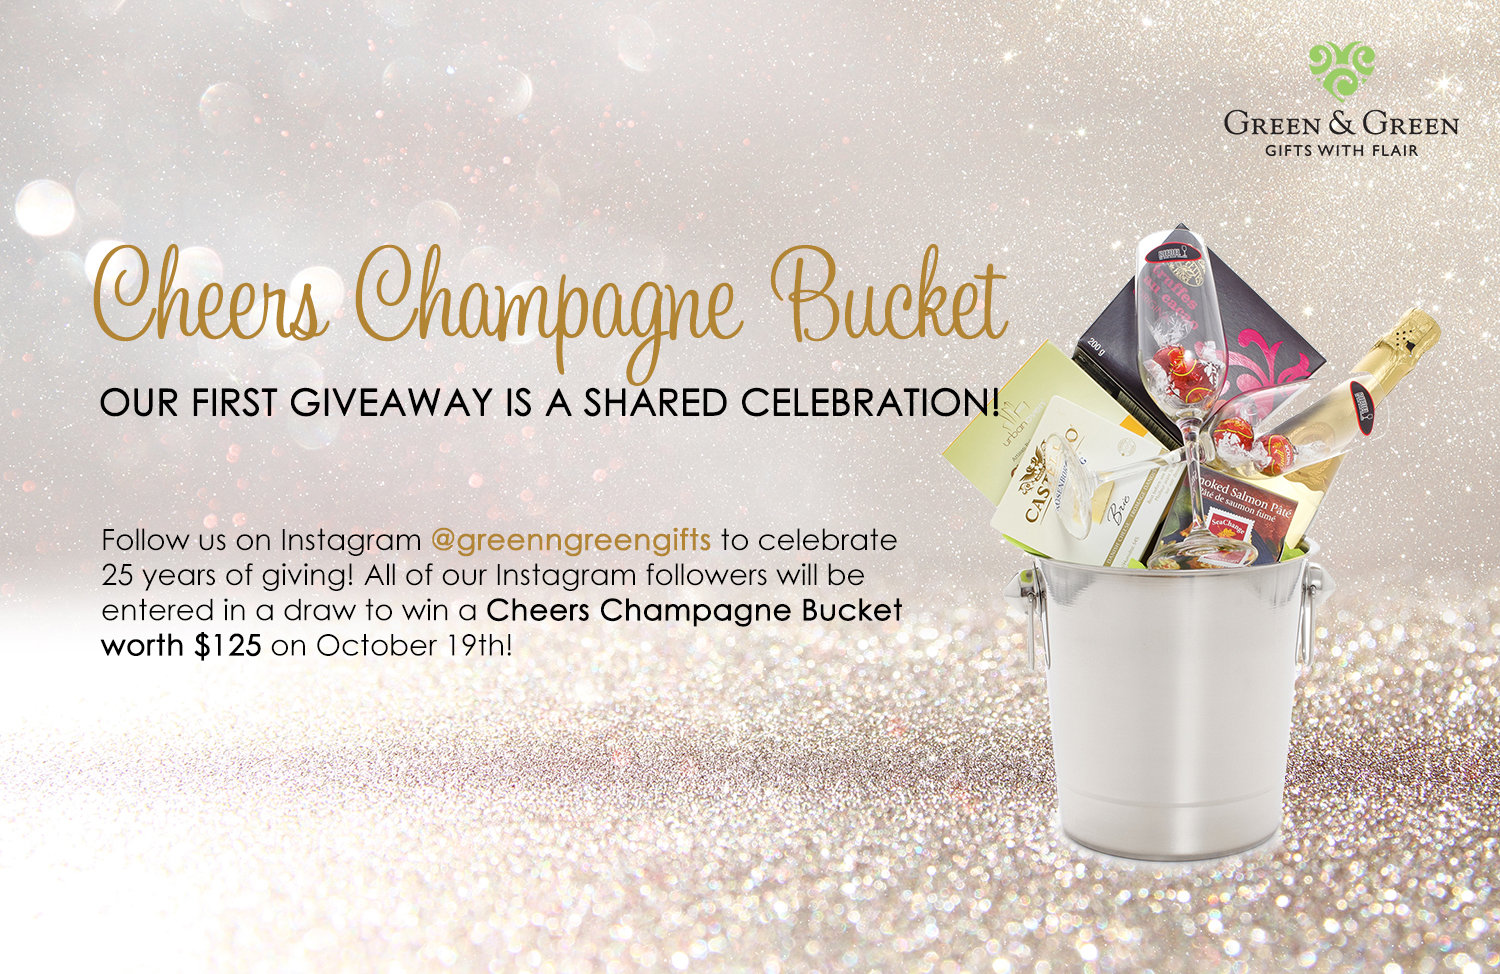 Champagne Giveaway - follow @greenngreengifts on Instagram to be entered